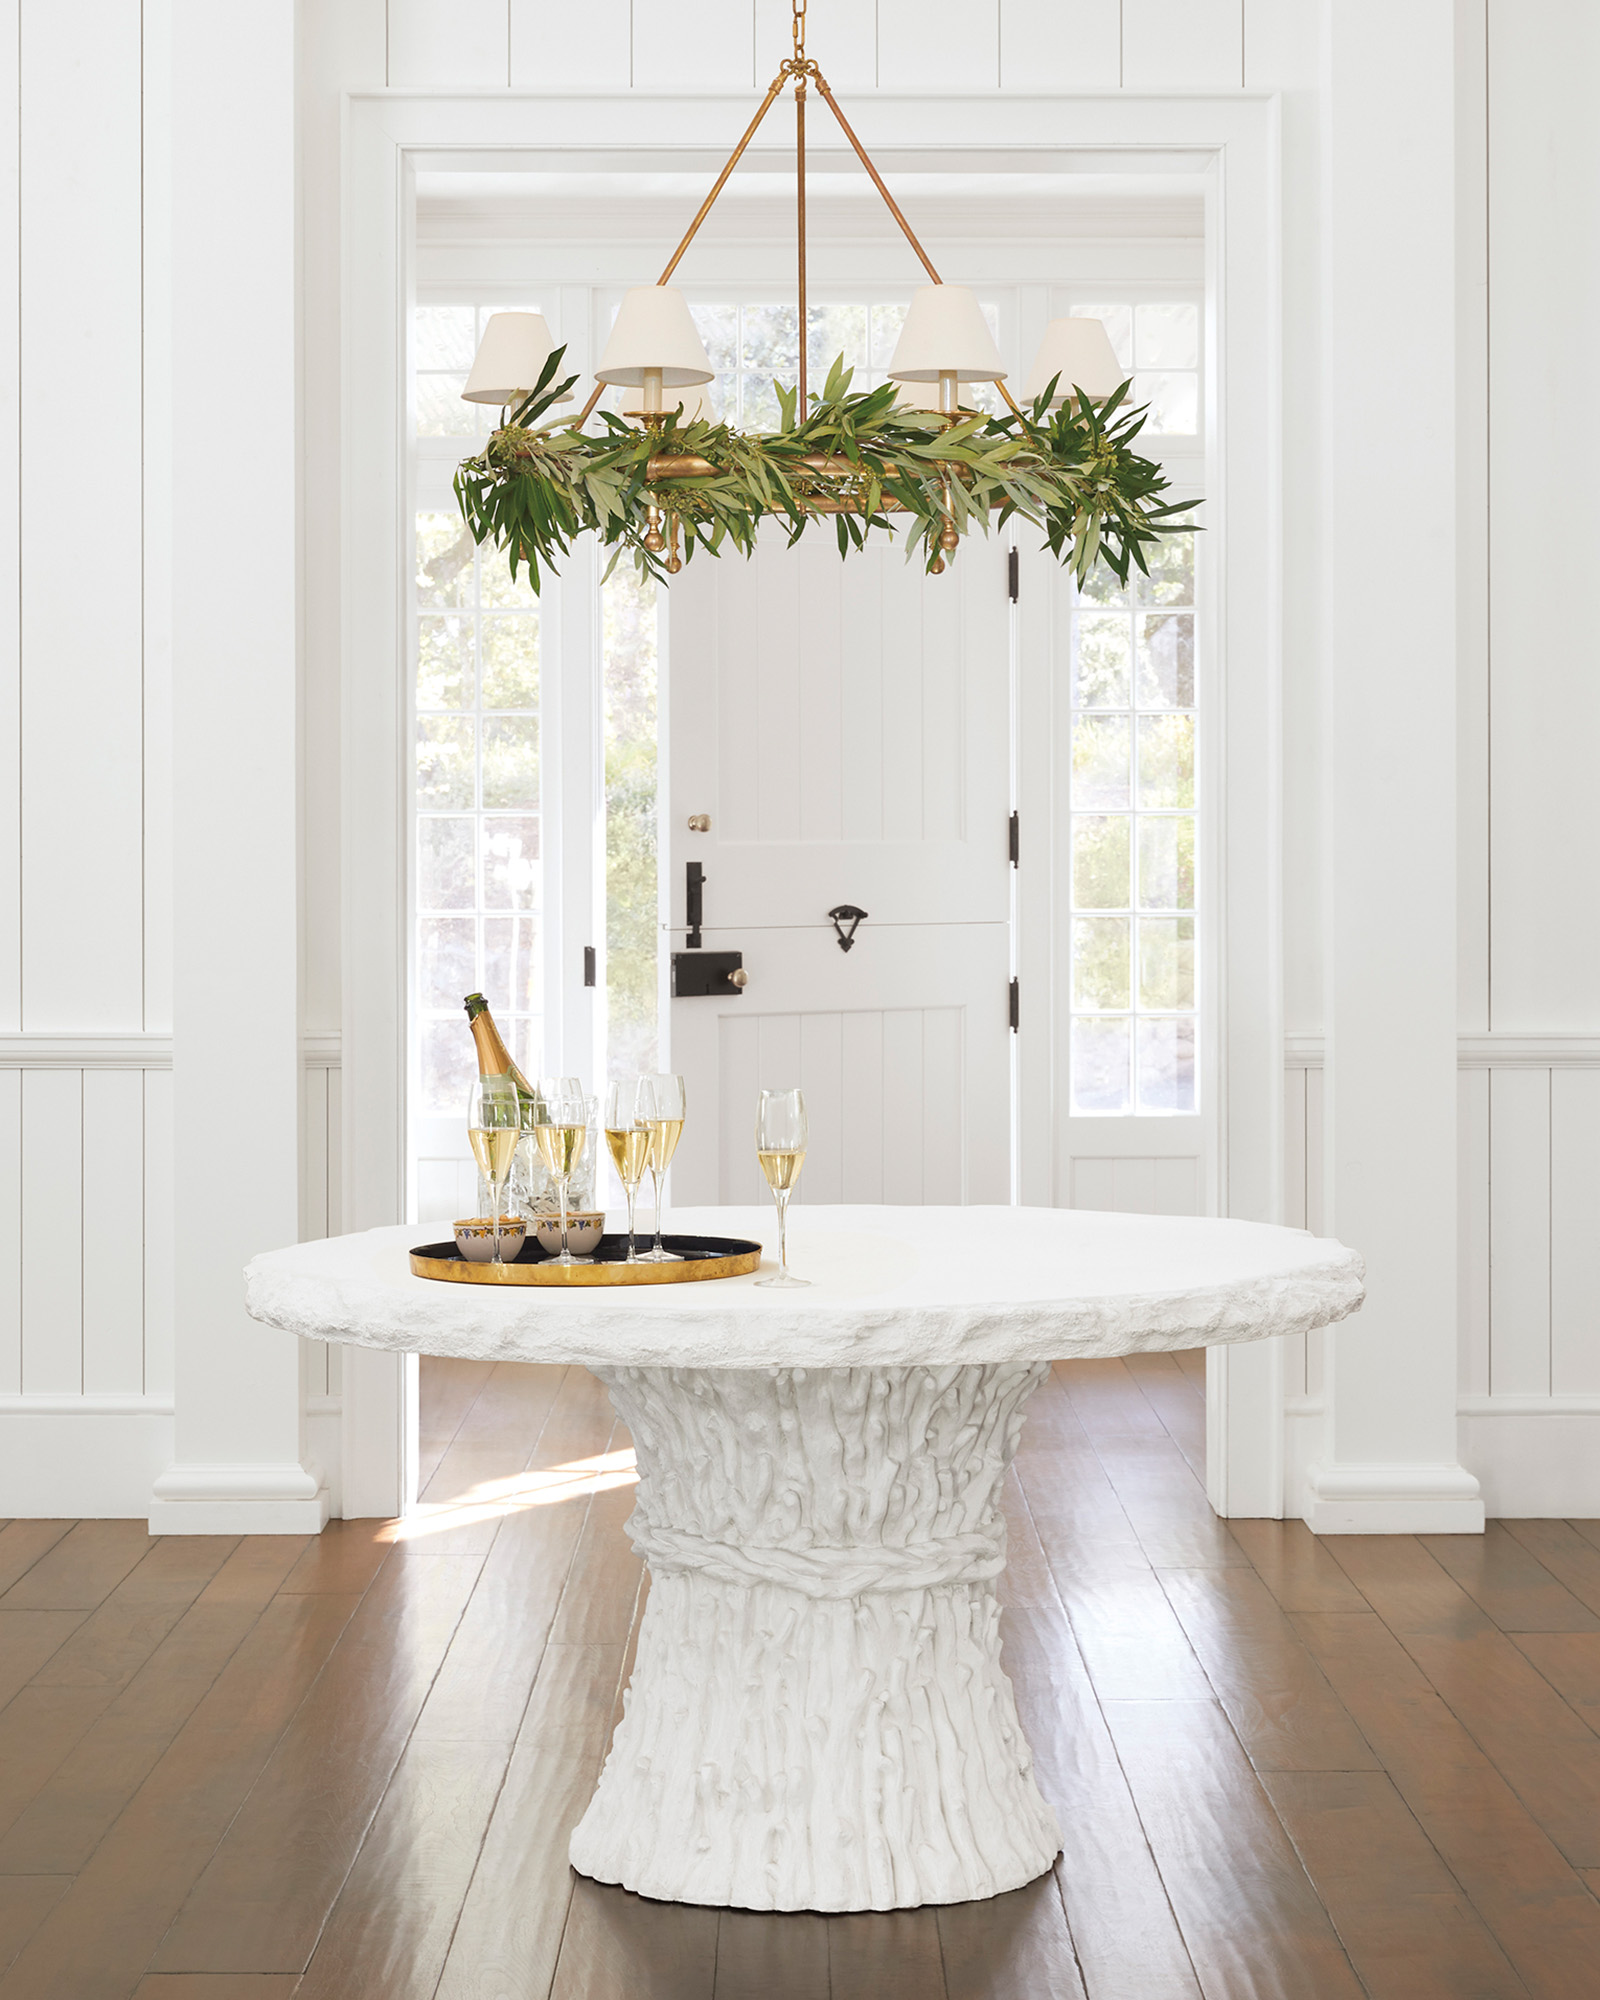 White faux bois table and greenery flocked chandelier in an all white entry of a coastal home - Serena & Lily.